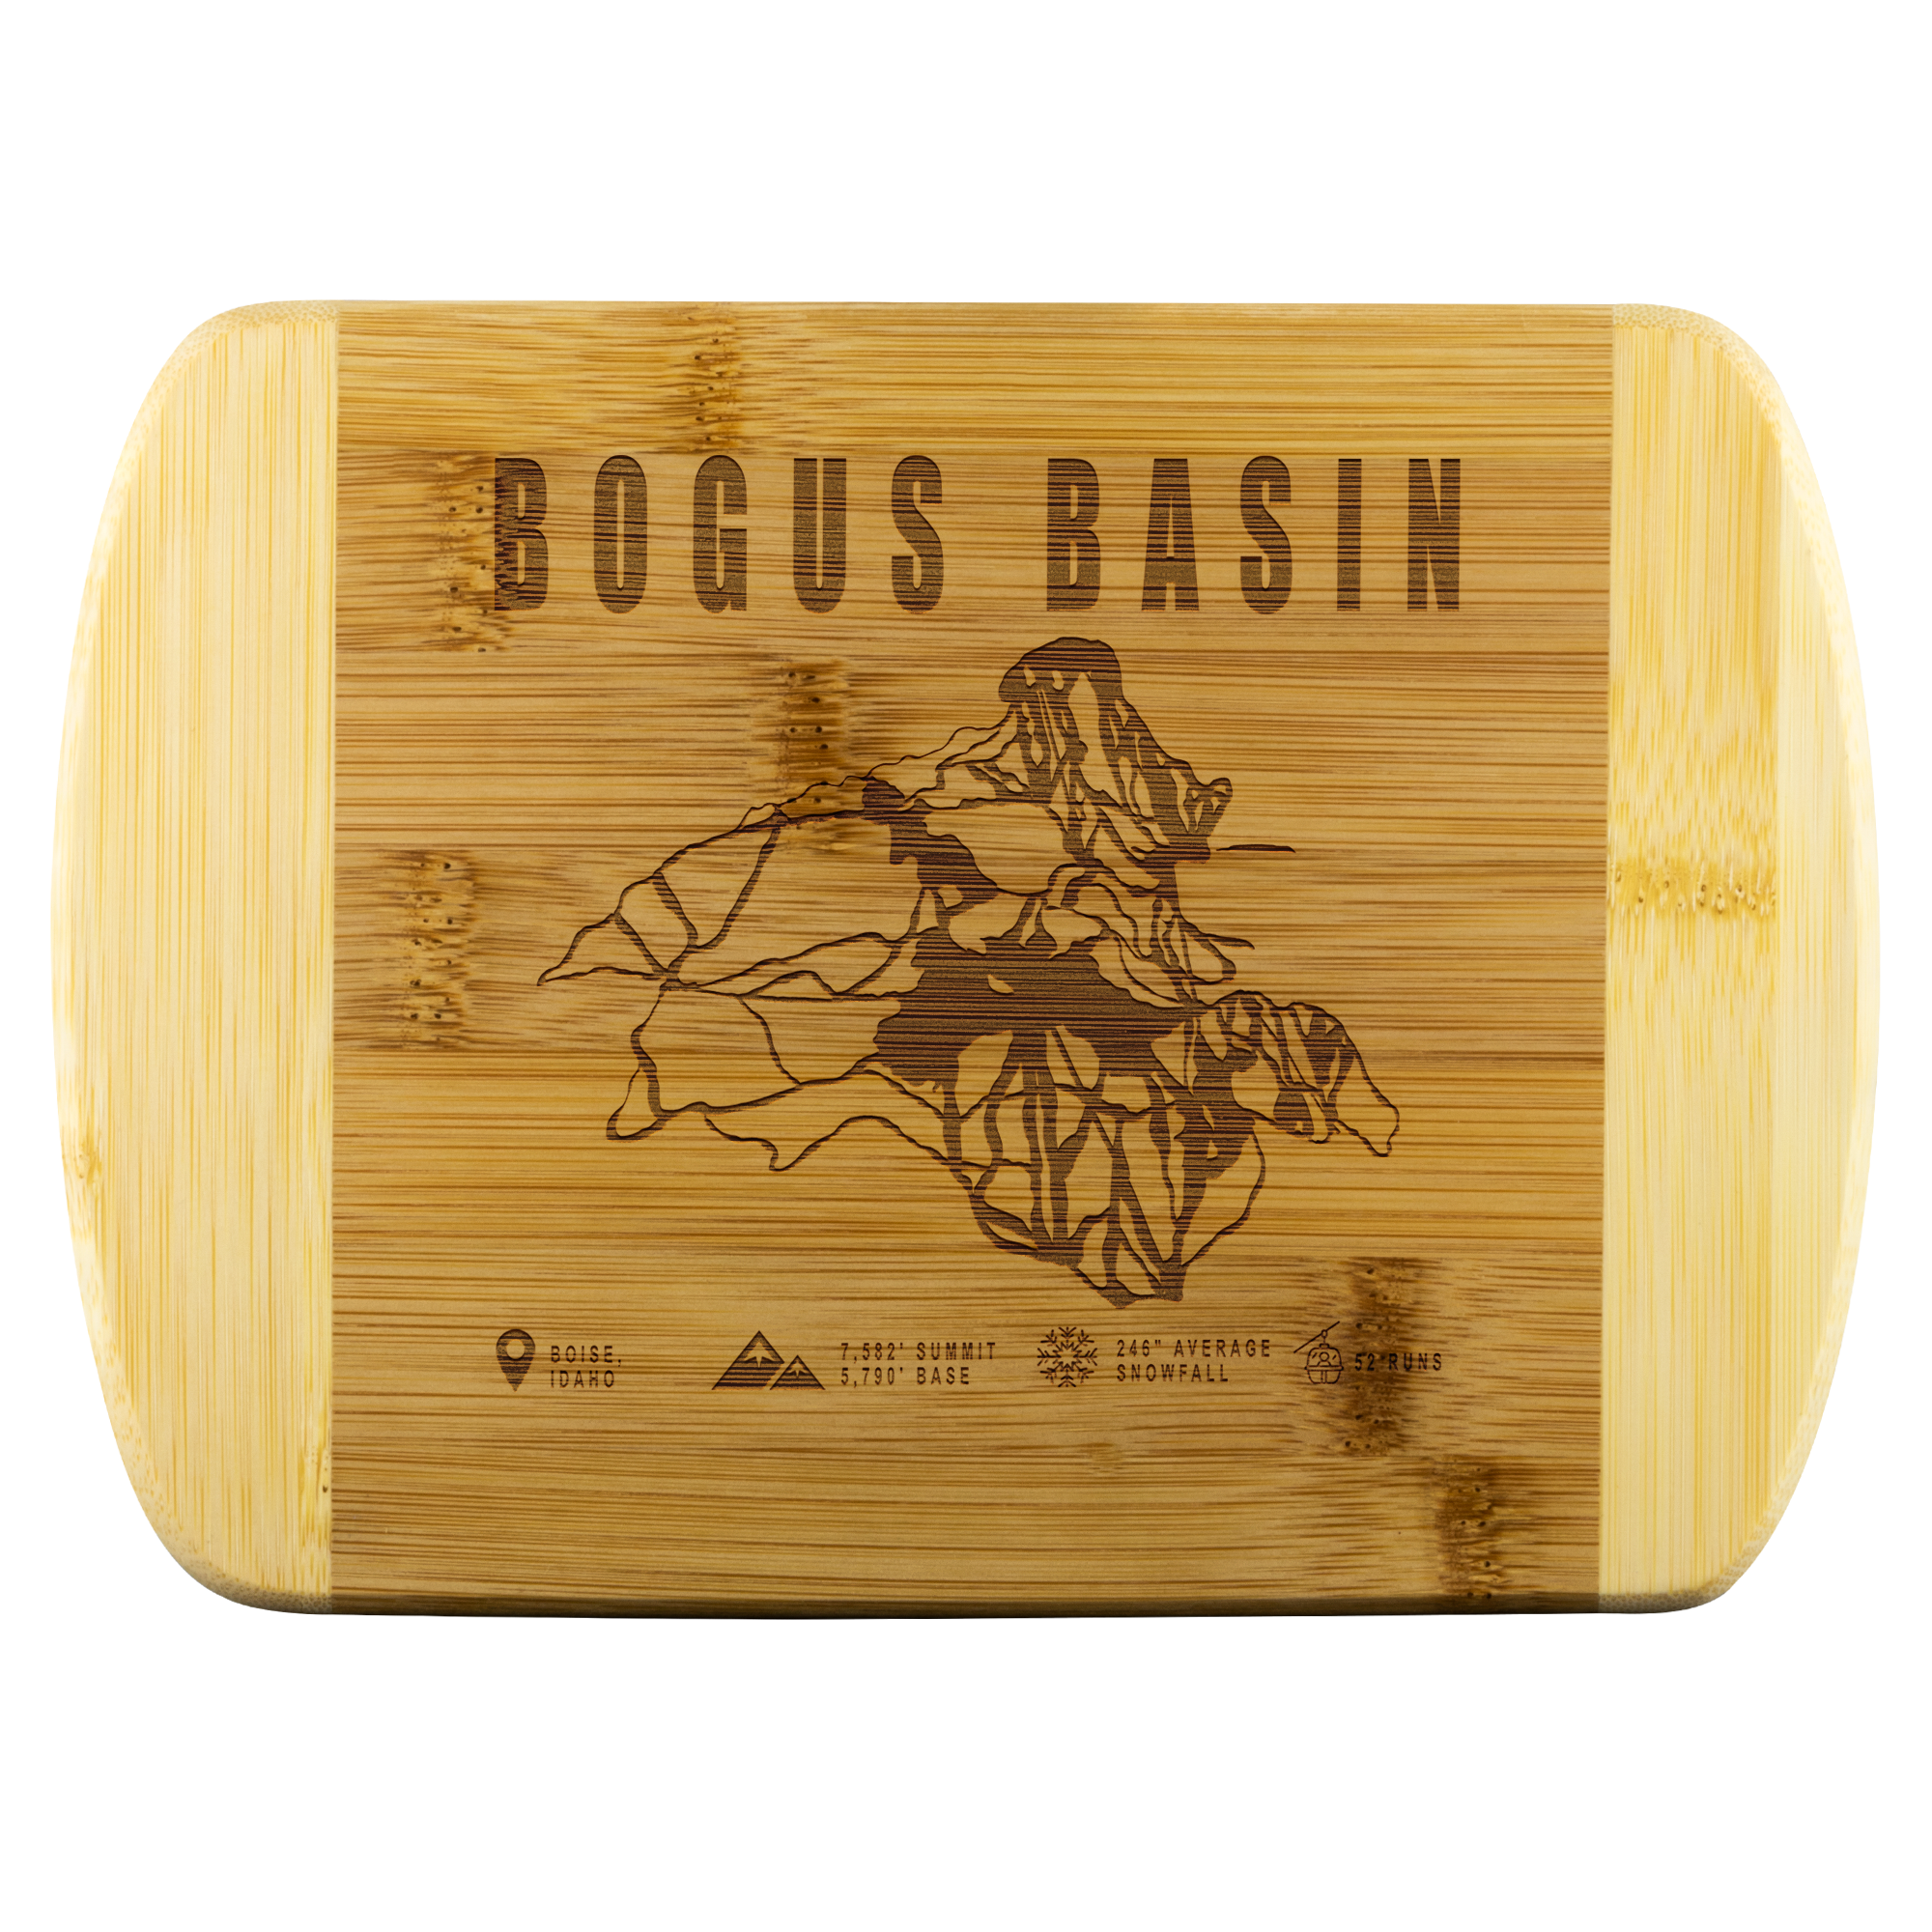 Bogus Basin Idaho Ski-Resort Map Bamboo Cutting Board Round Edge